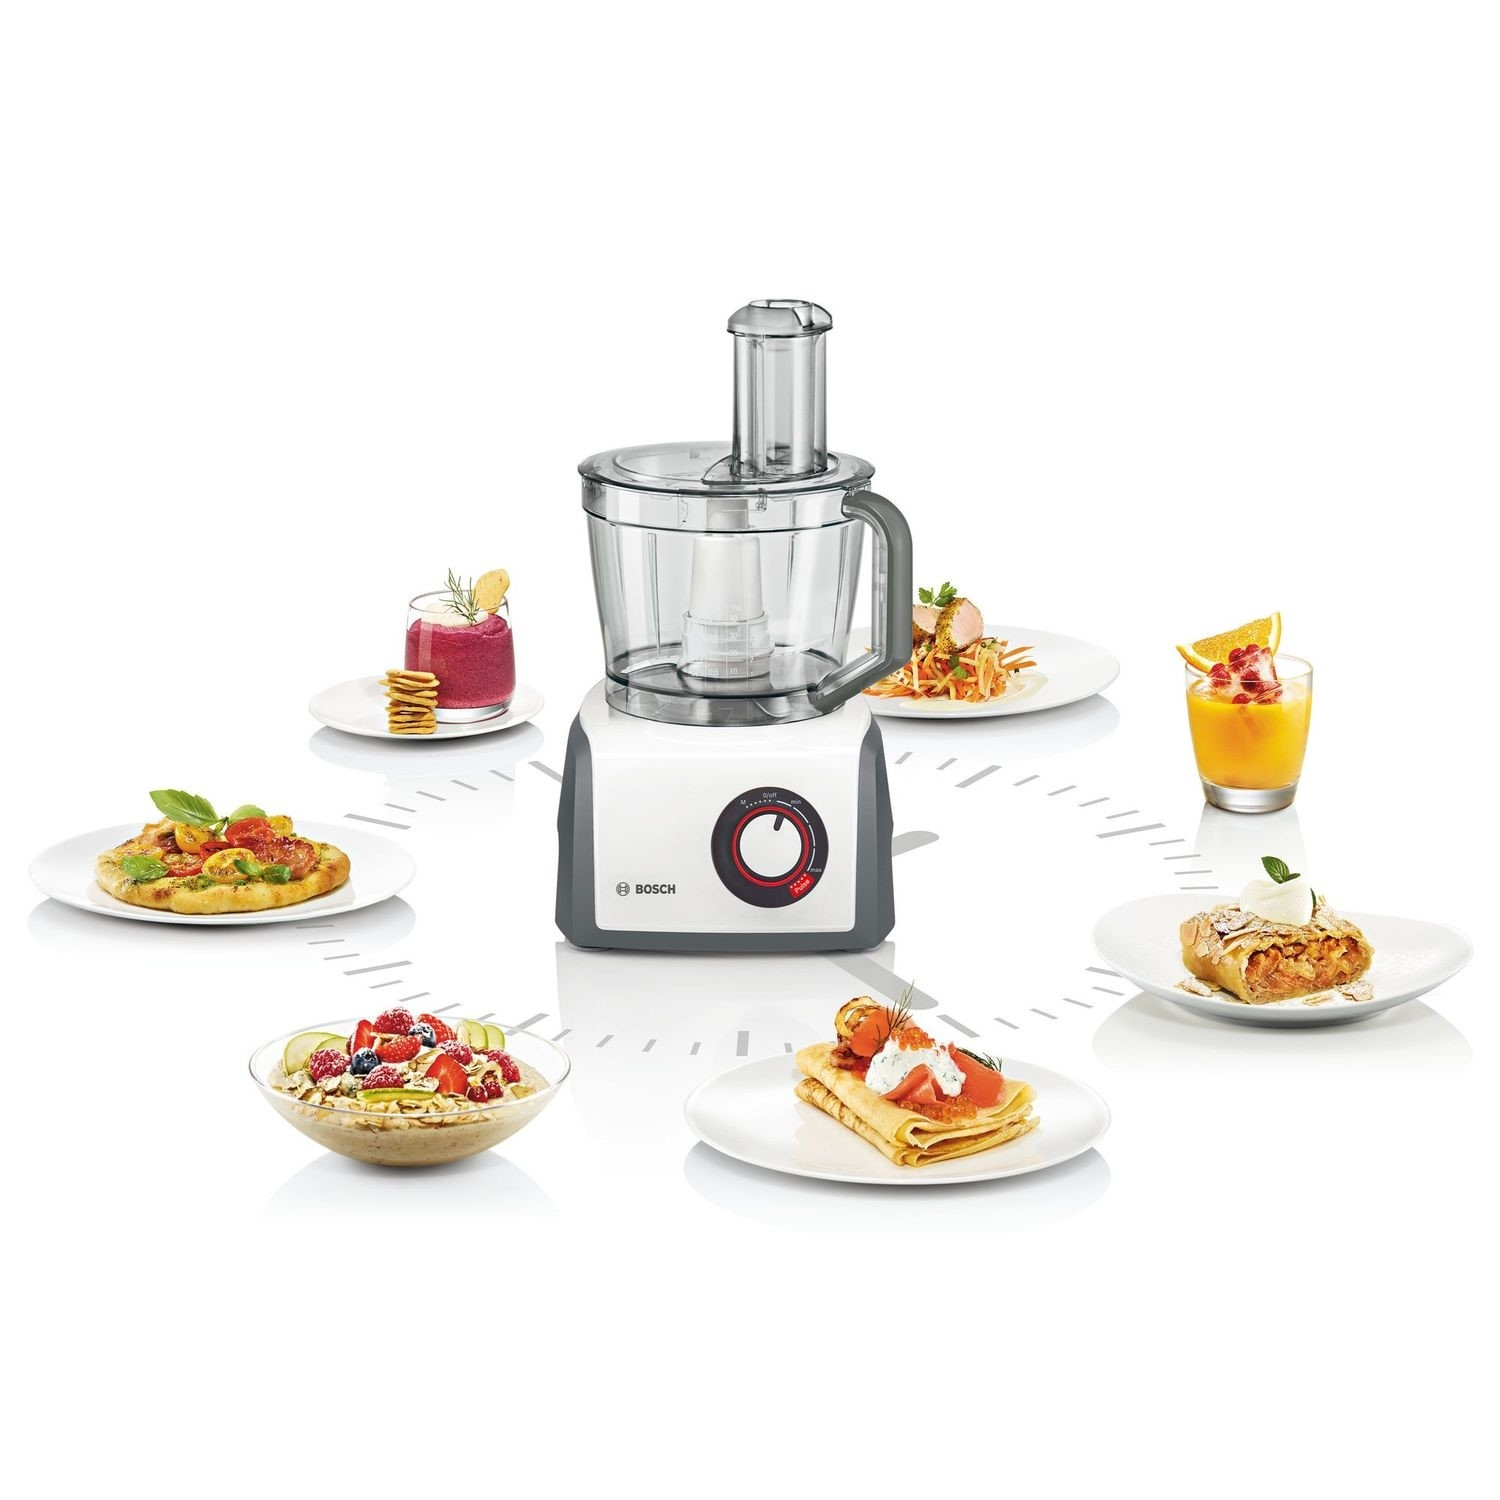 Bosch Mcm62020gb 3 9l Food Processor With Blender And